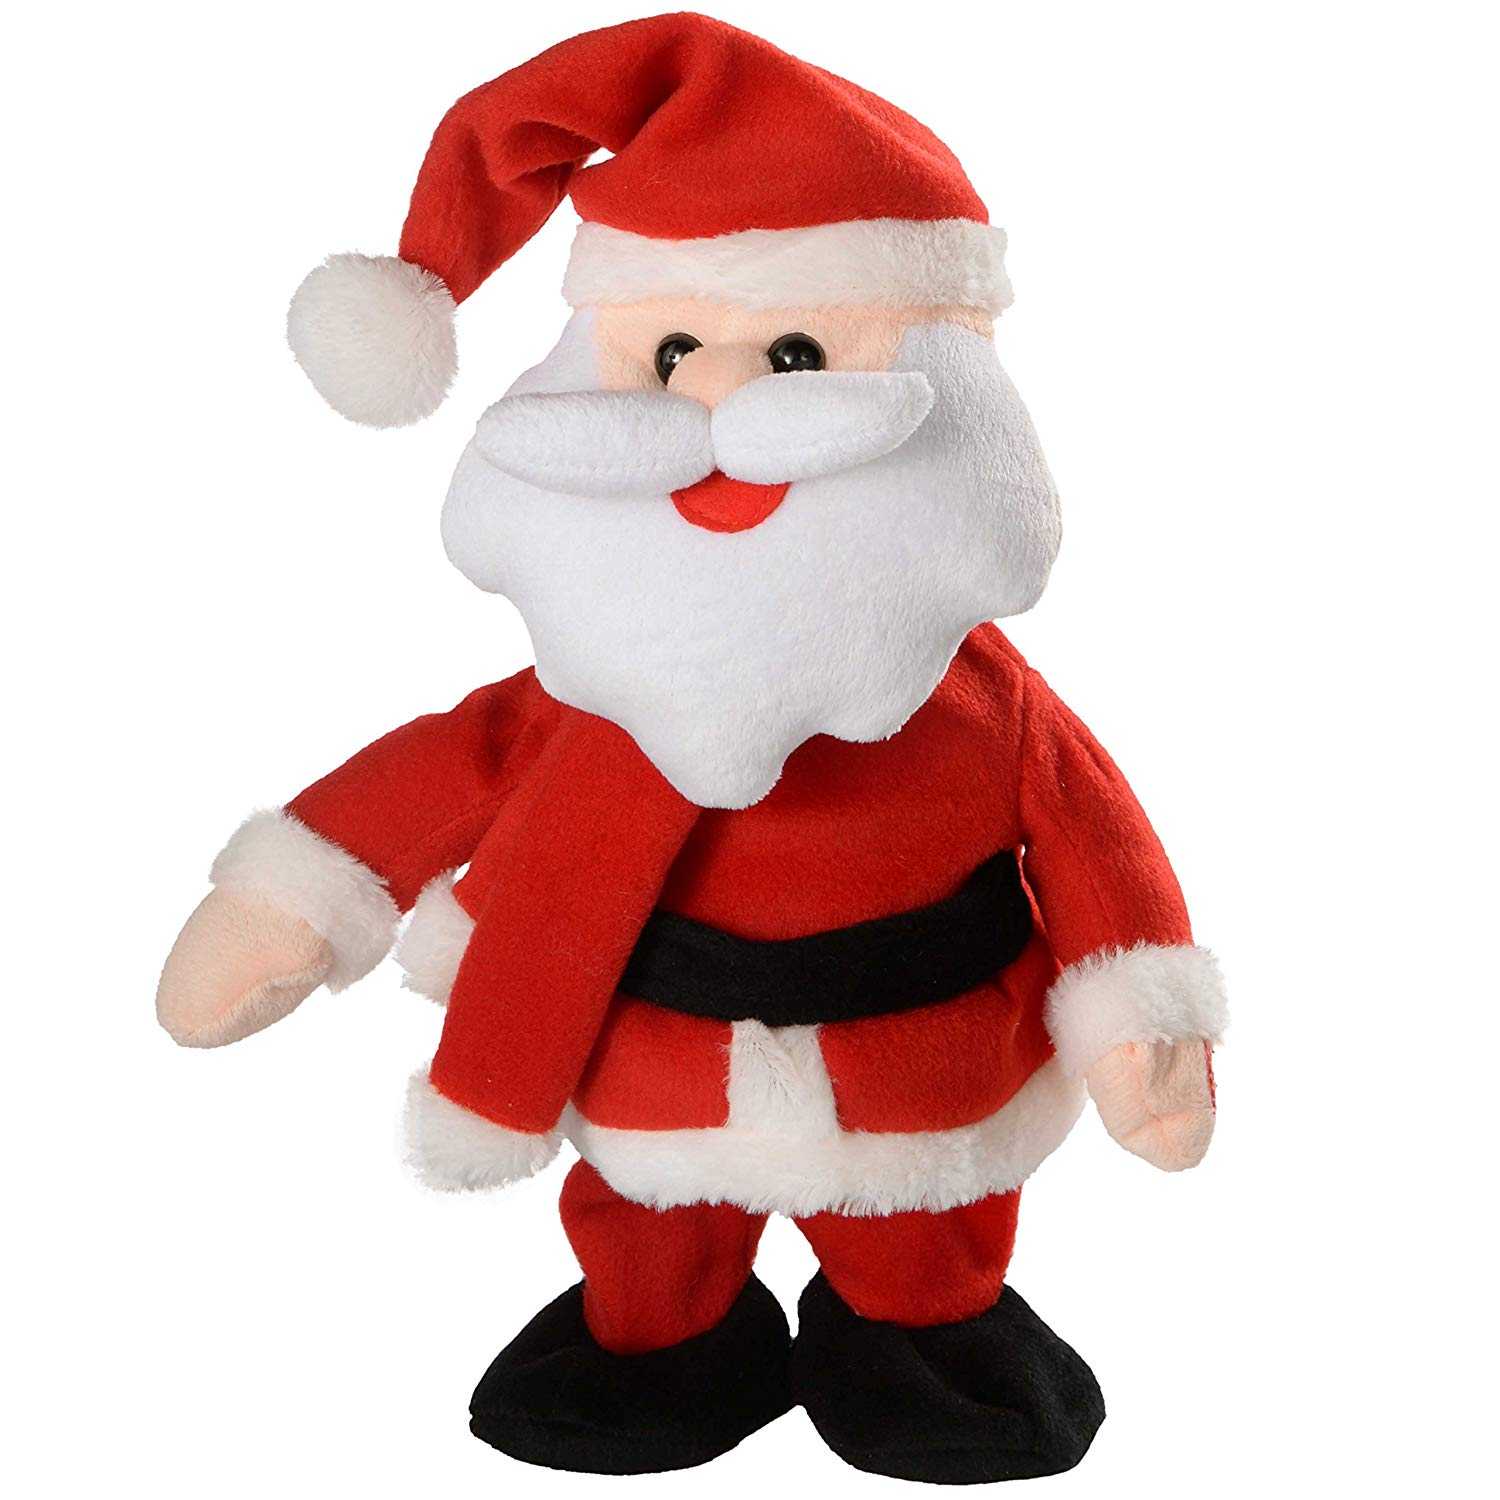 70% off Walking/Dancing and Singing Santa Christmas Decoration, 30 cm